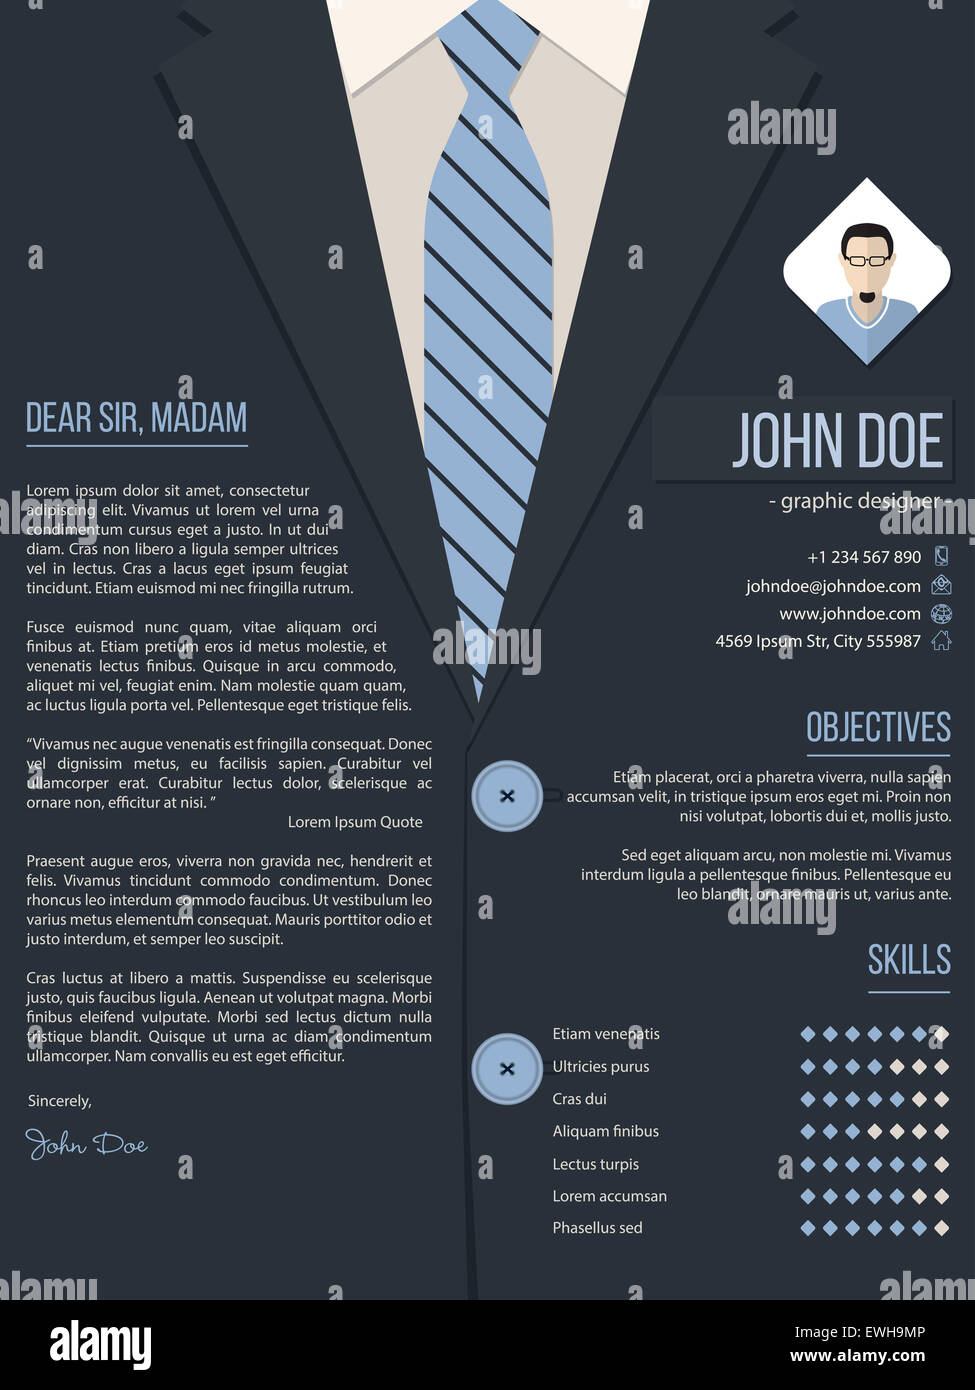 Best Cover Letter Resume Choice Image - Cover Letter Ideas